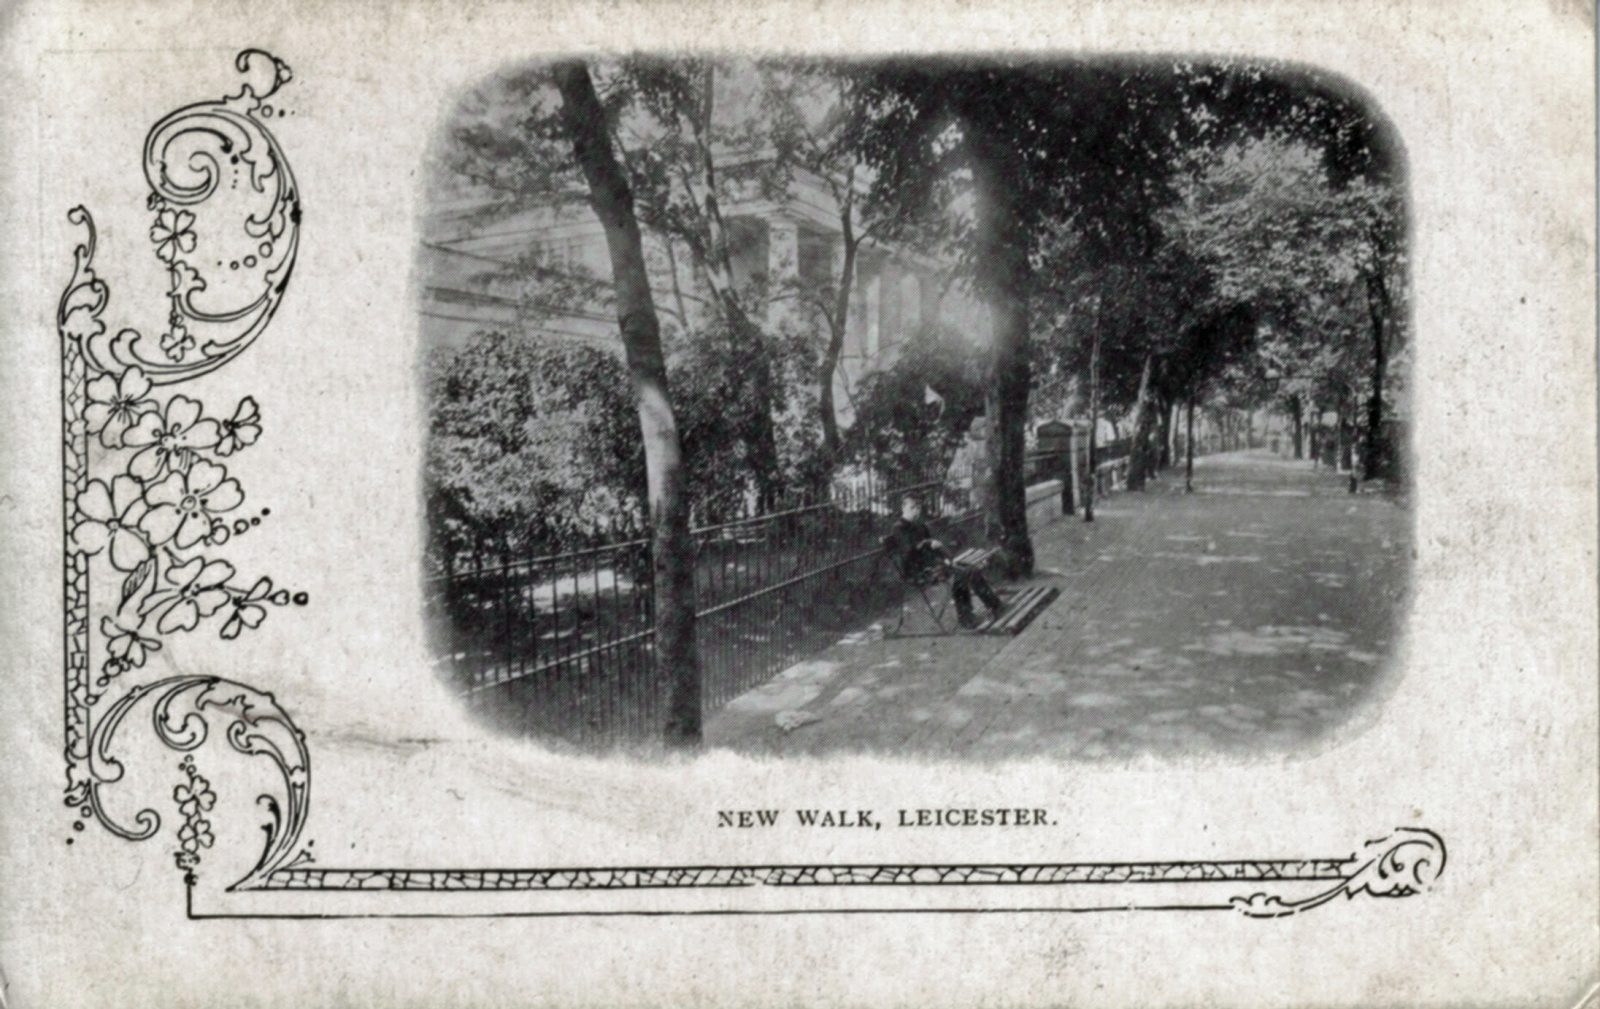 New Walk, Leicester. 1901-1920: General view in vignette format. Seated figure on foreground bench. (File:1109)